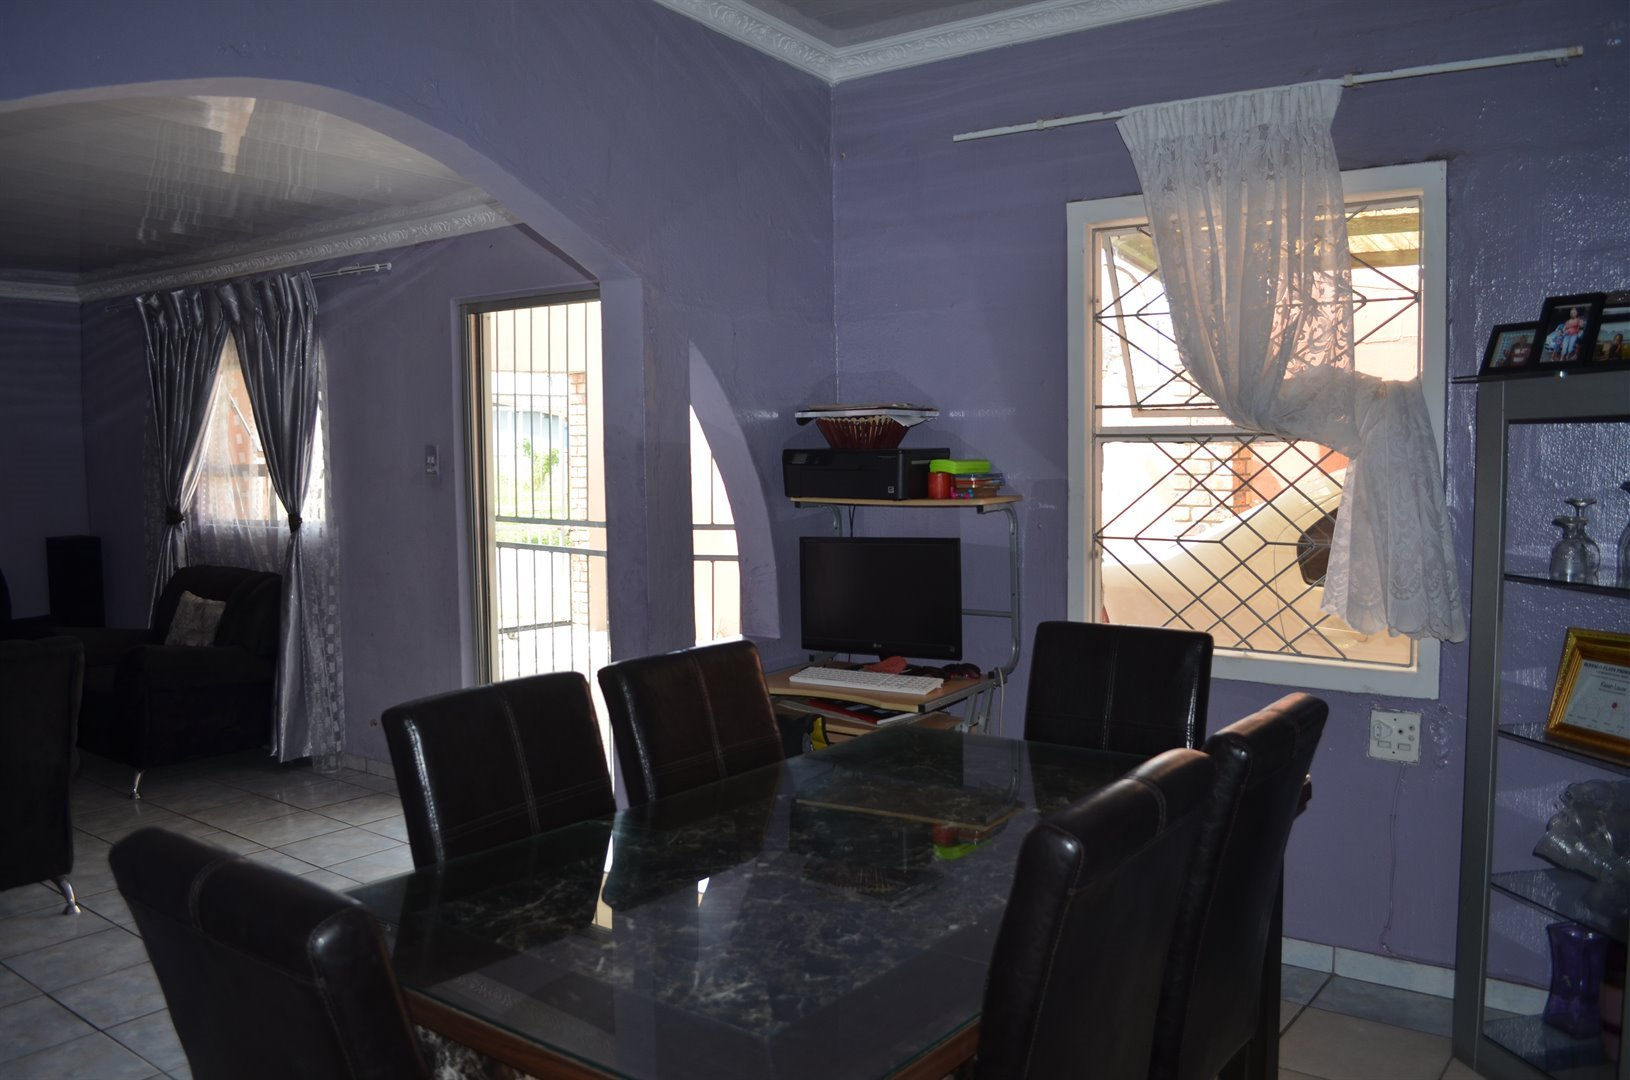 Property for Sale by DLC INC Attorneys Maurice Abrams, House, 2 Bedrooms - ZAR 650,000